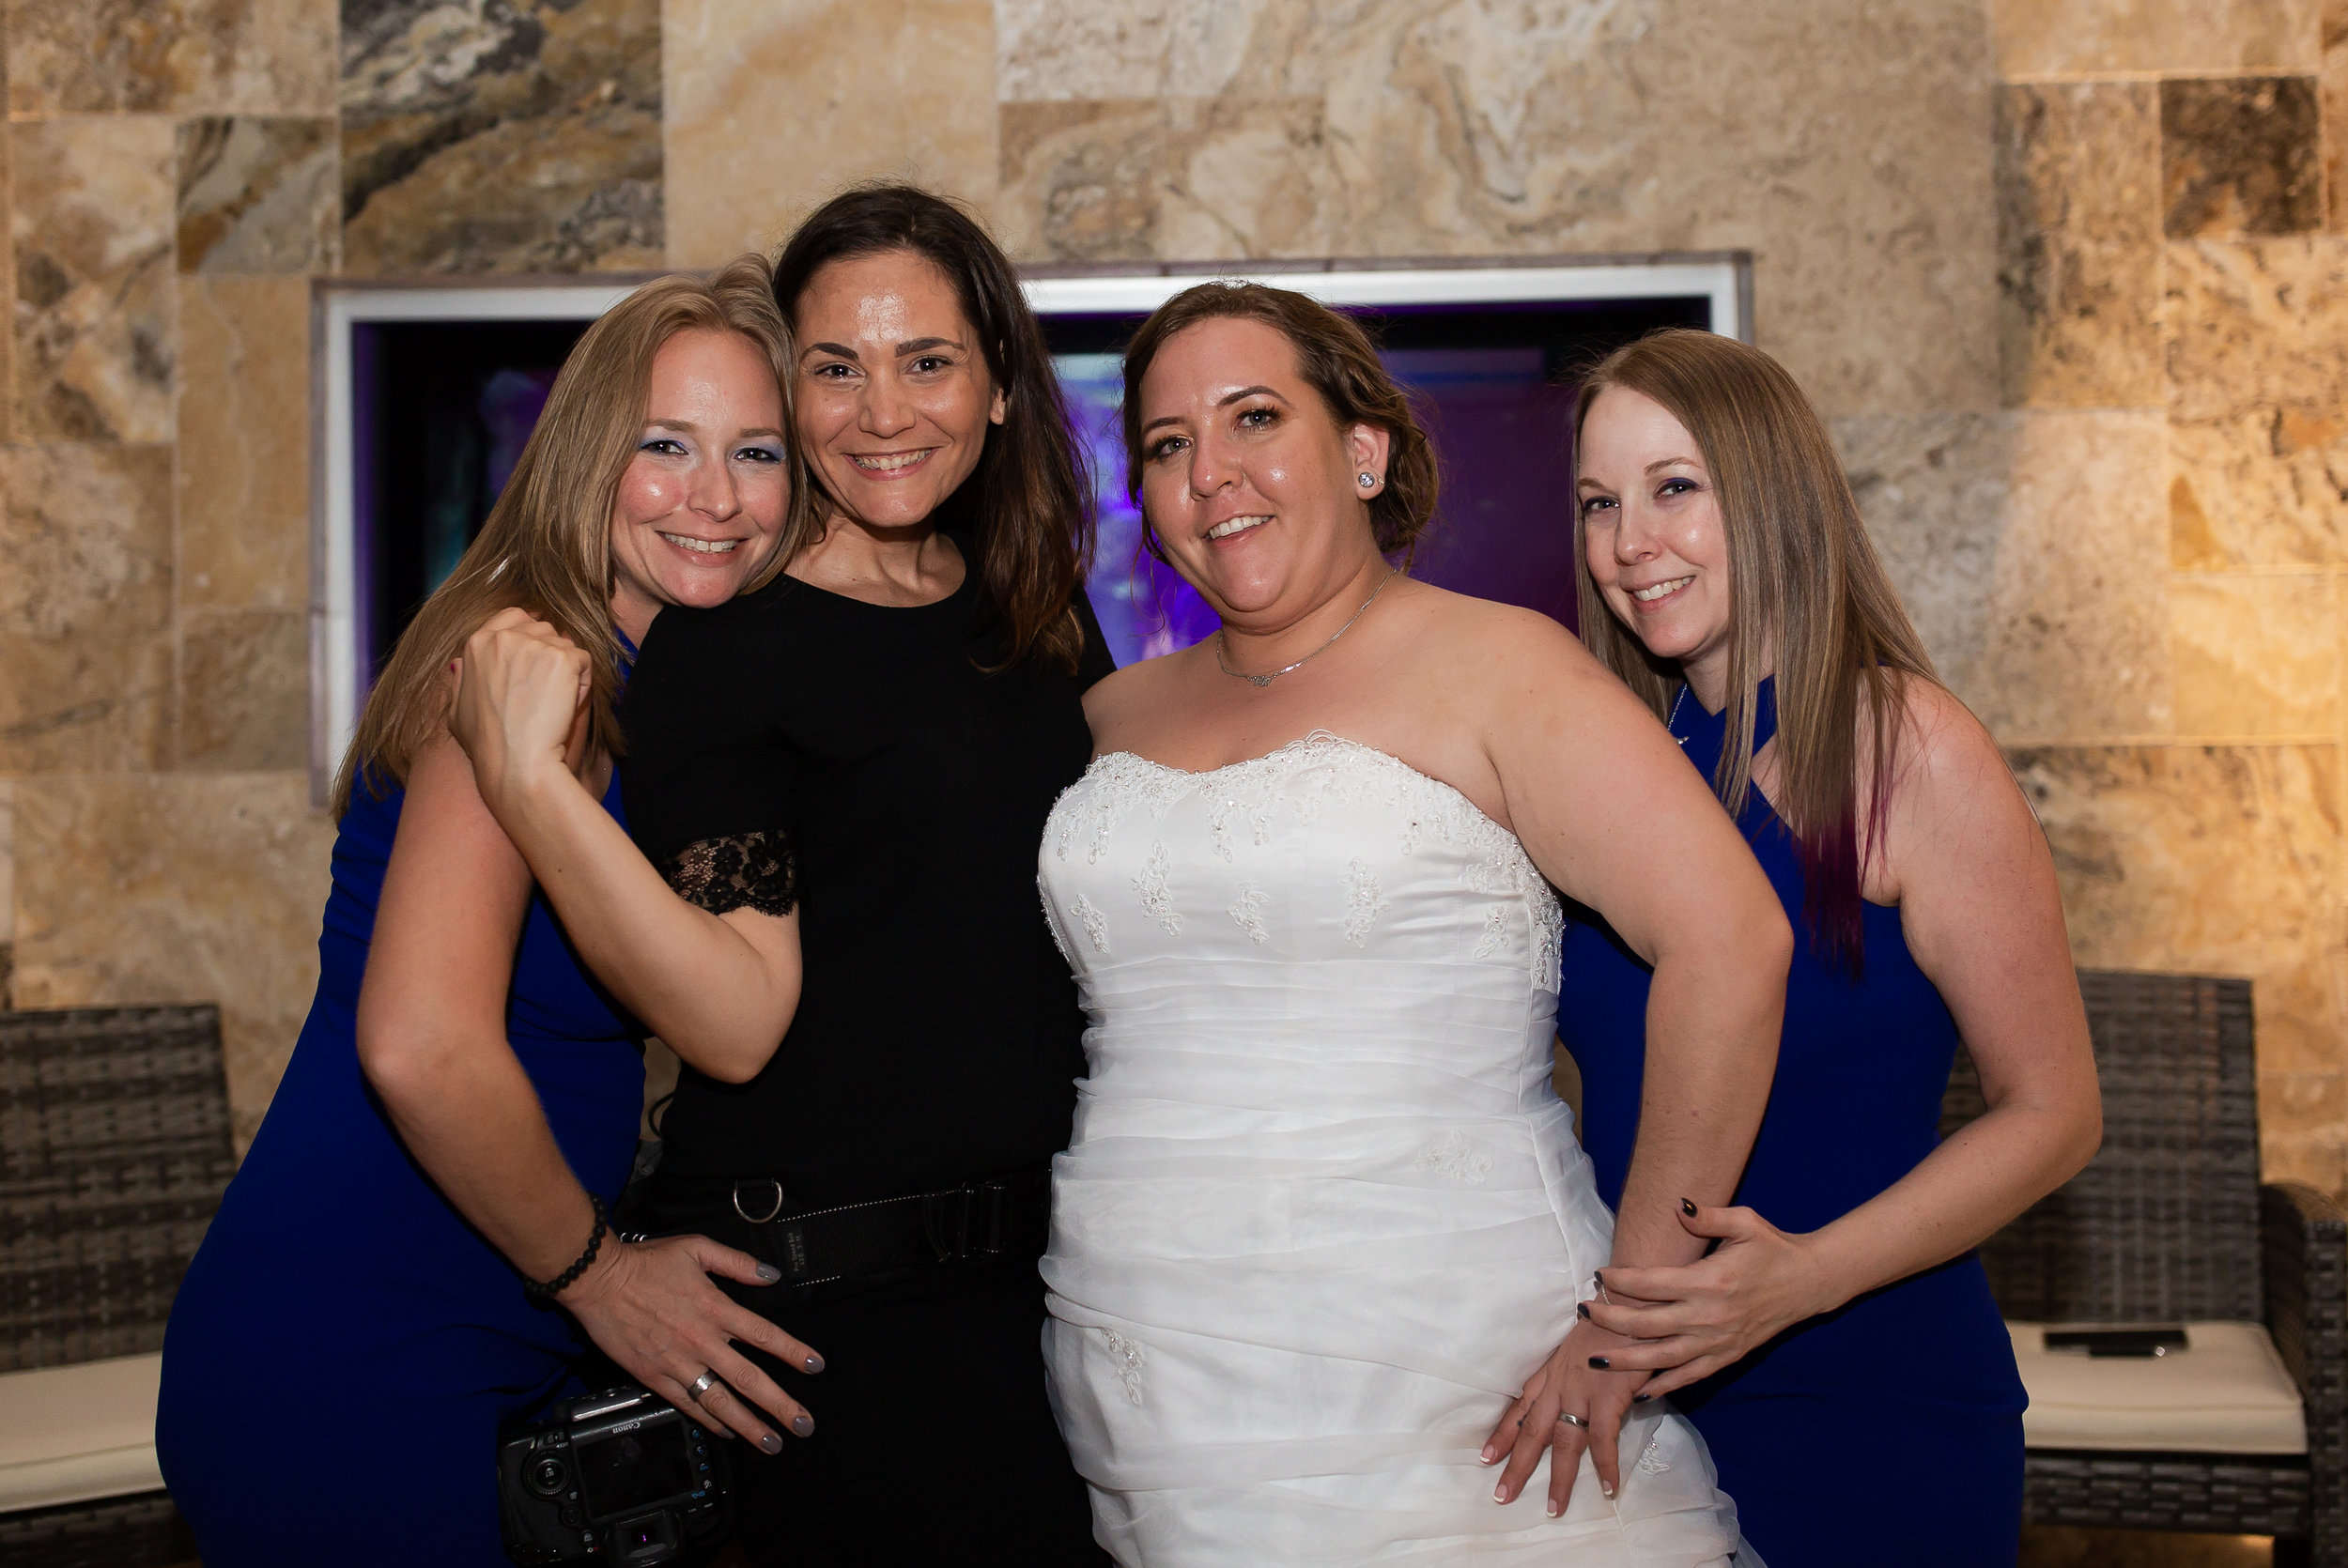 it's extremely rare for me to jump in a photo, but i consider these three sisters my family!